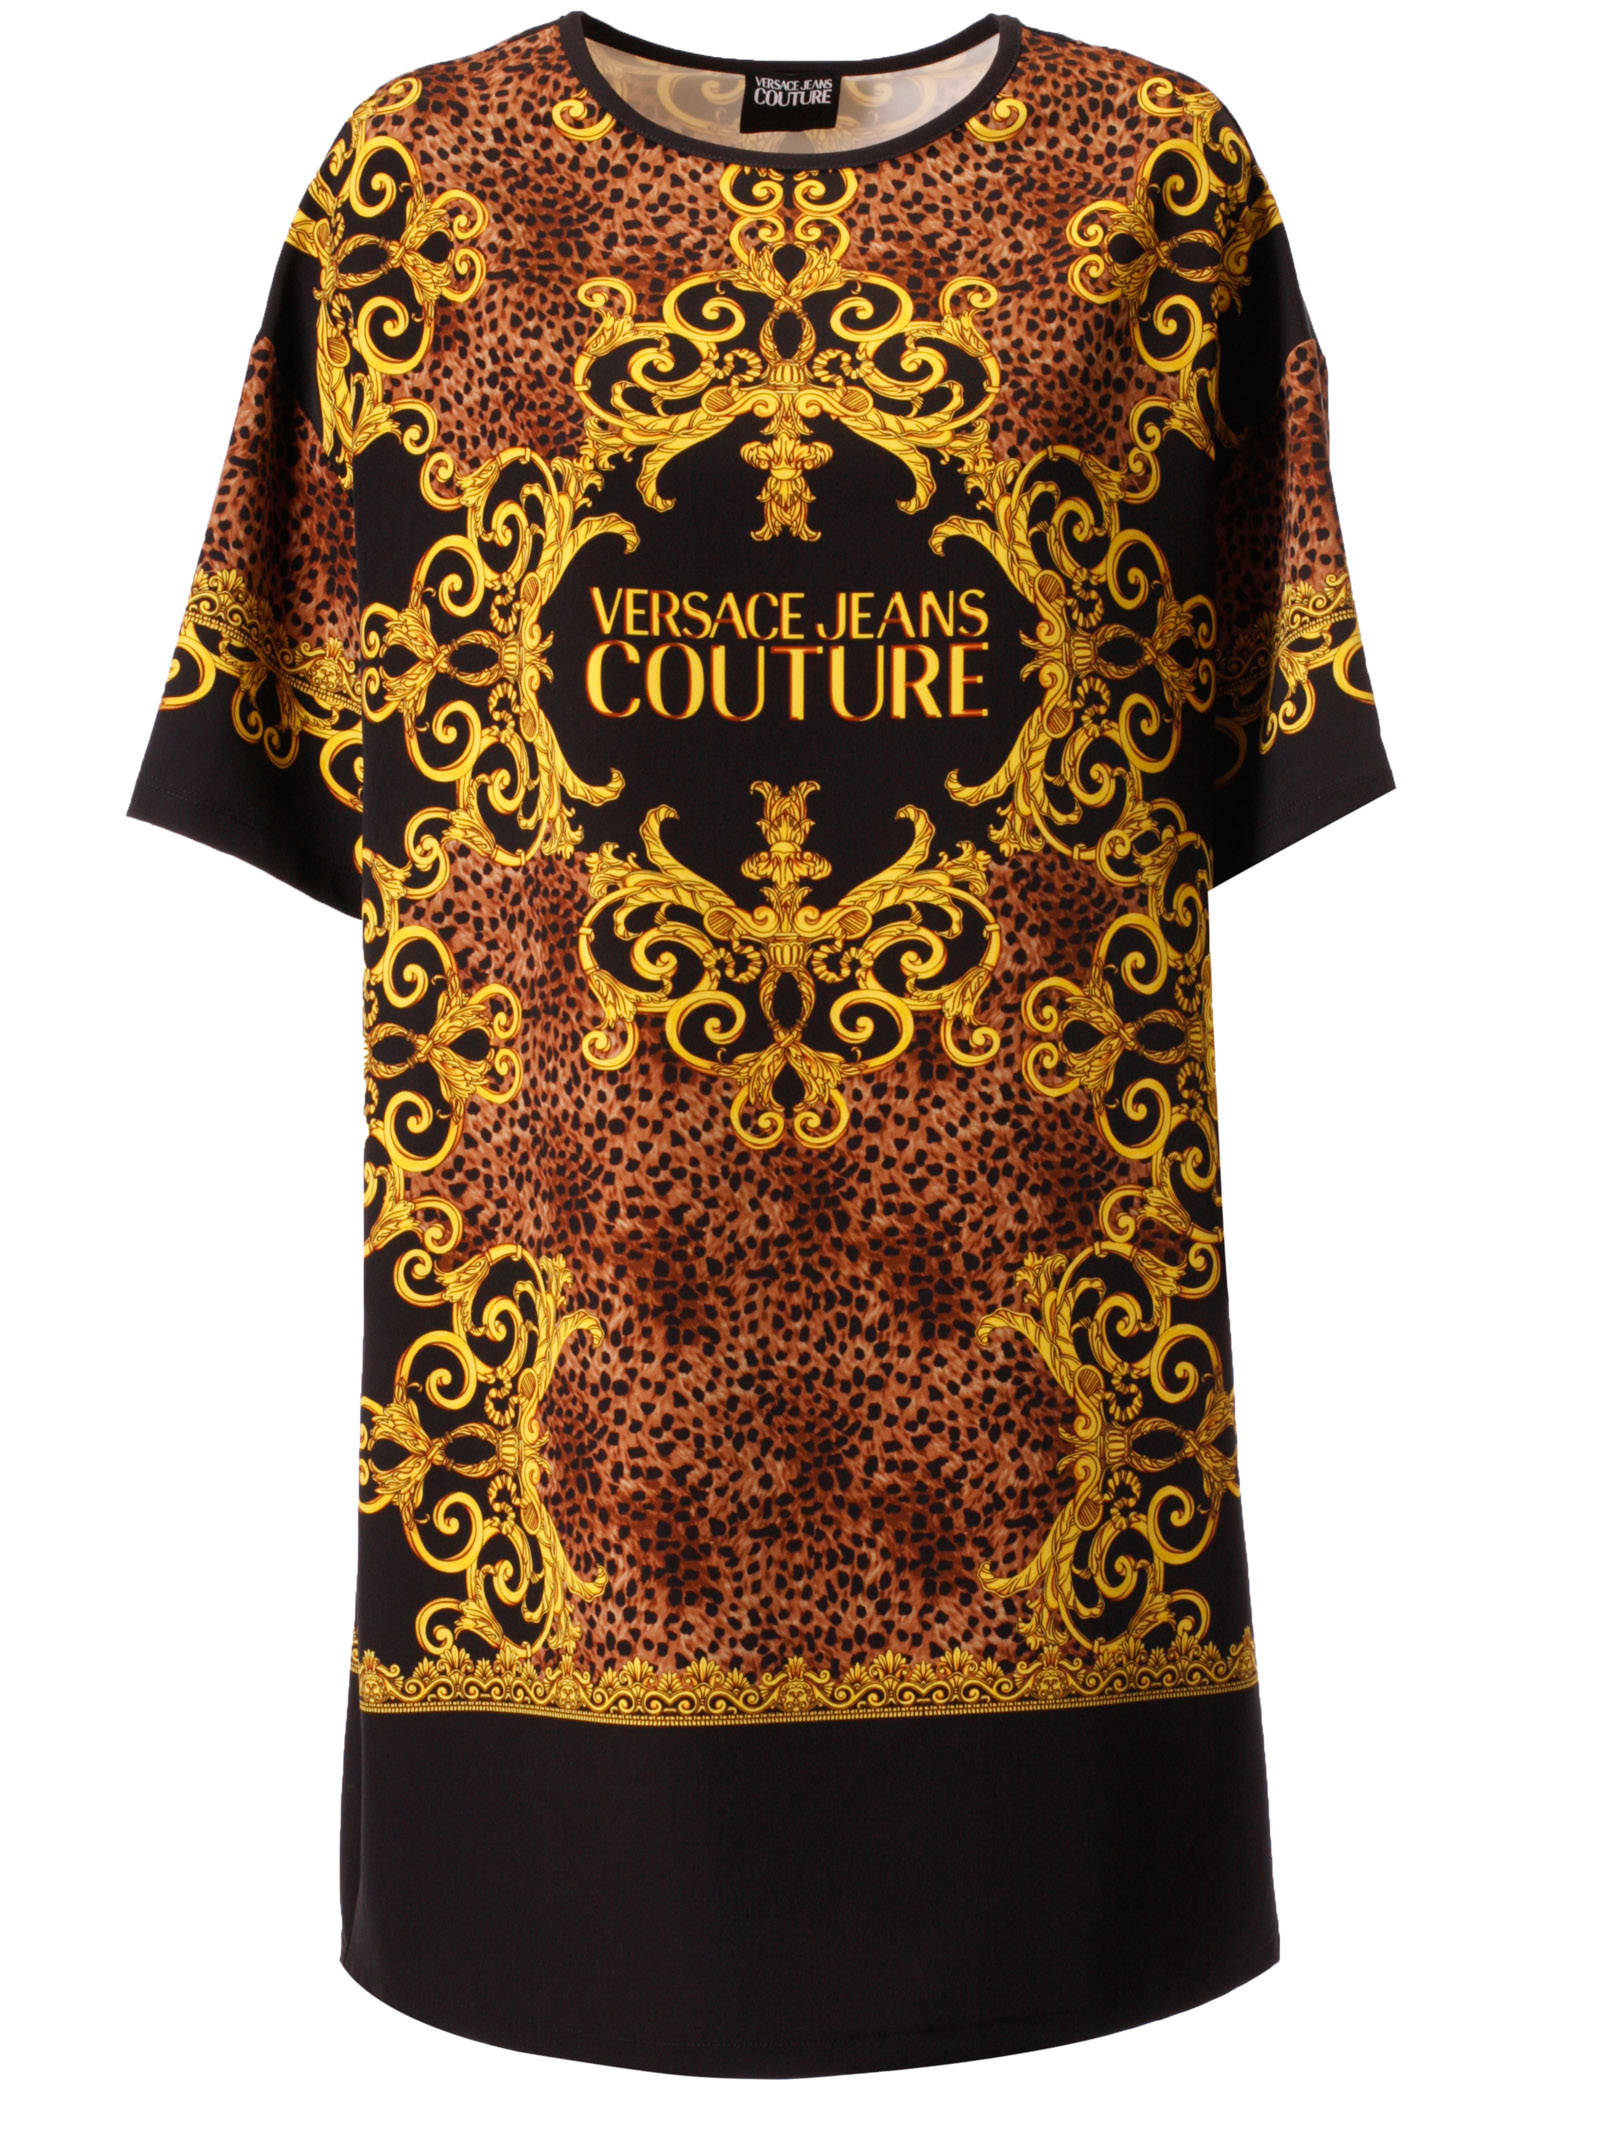 Versace Jeans Couture Leopard & Baroque Print Dress